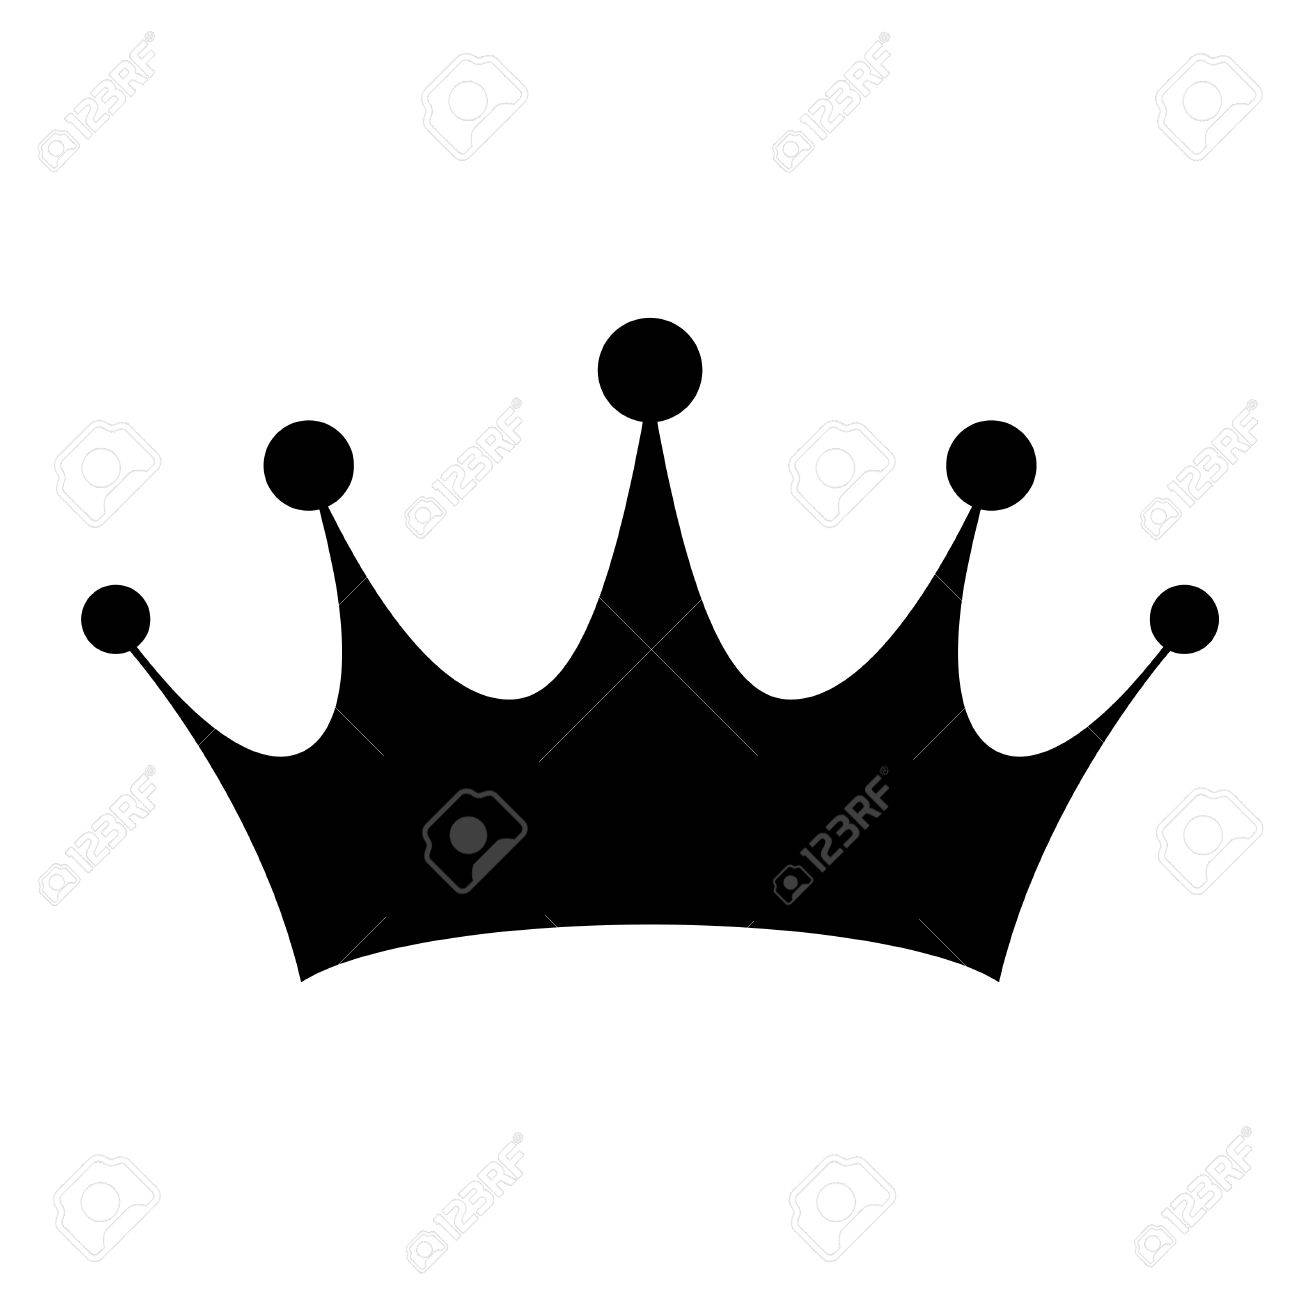 crown royalty free cliparts vectors and stock illustration image rh 123rf com vector crown logo vector crowns illustrator